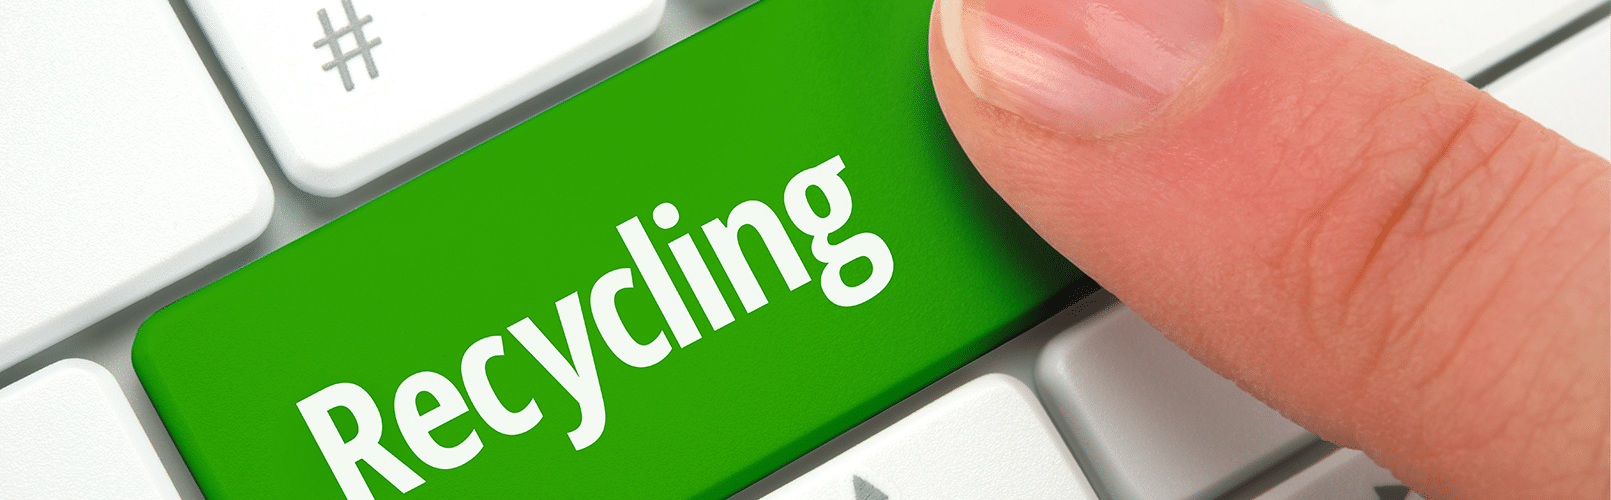 Electronic Recycling Services